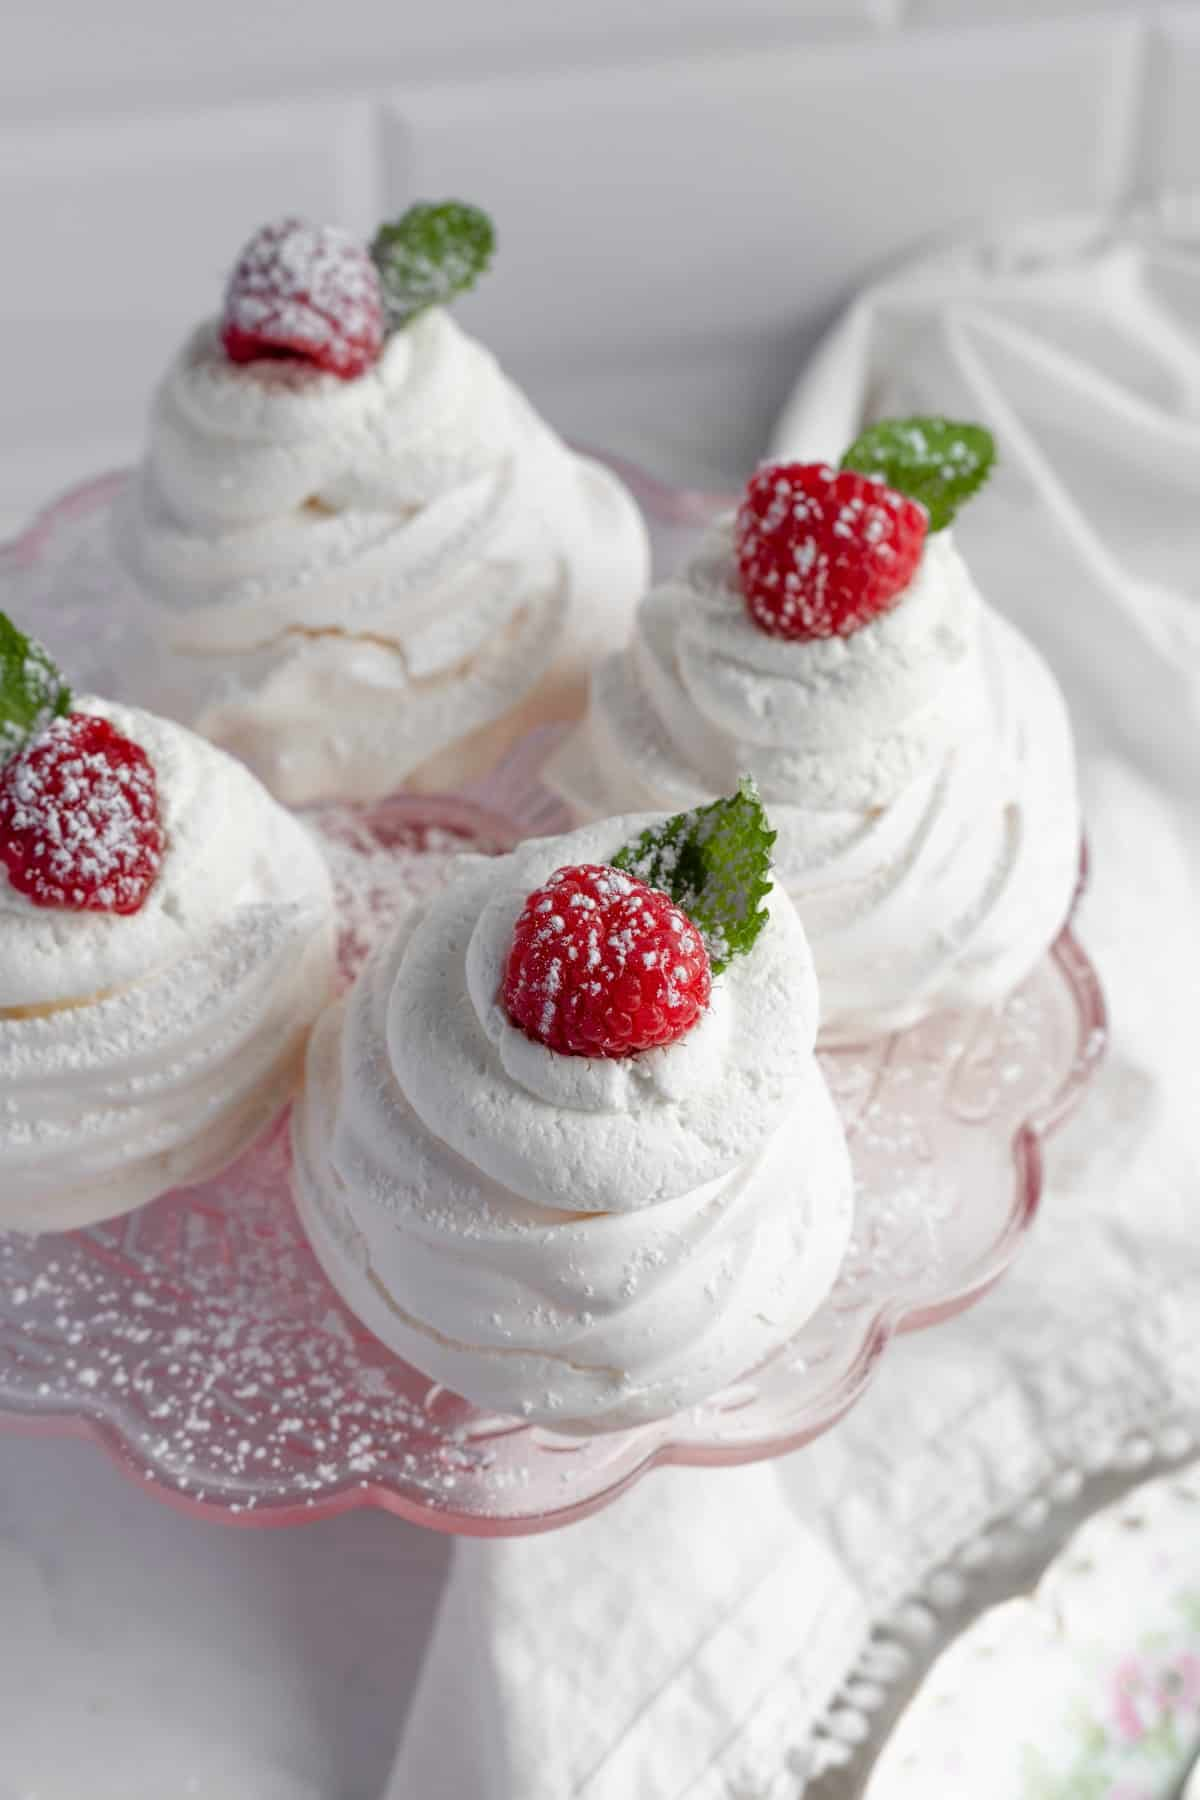 Raspberry and mint topped pavlovas